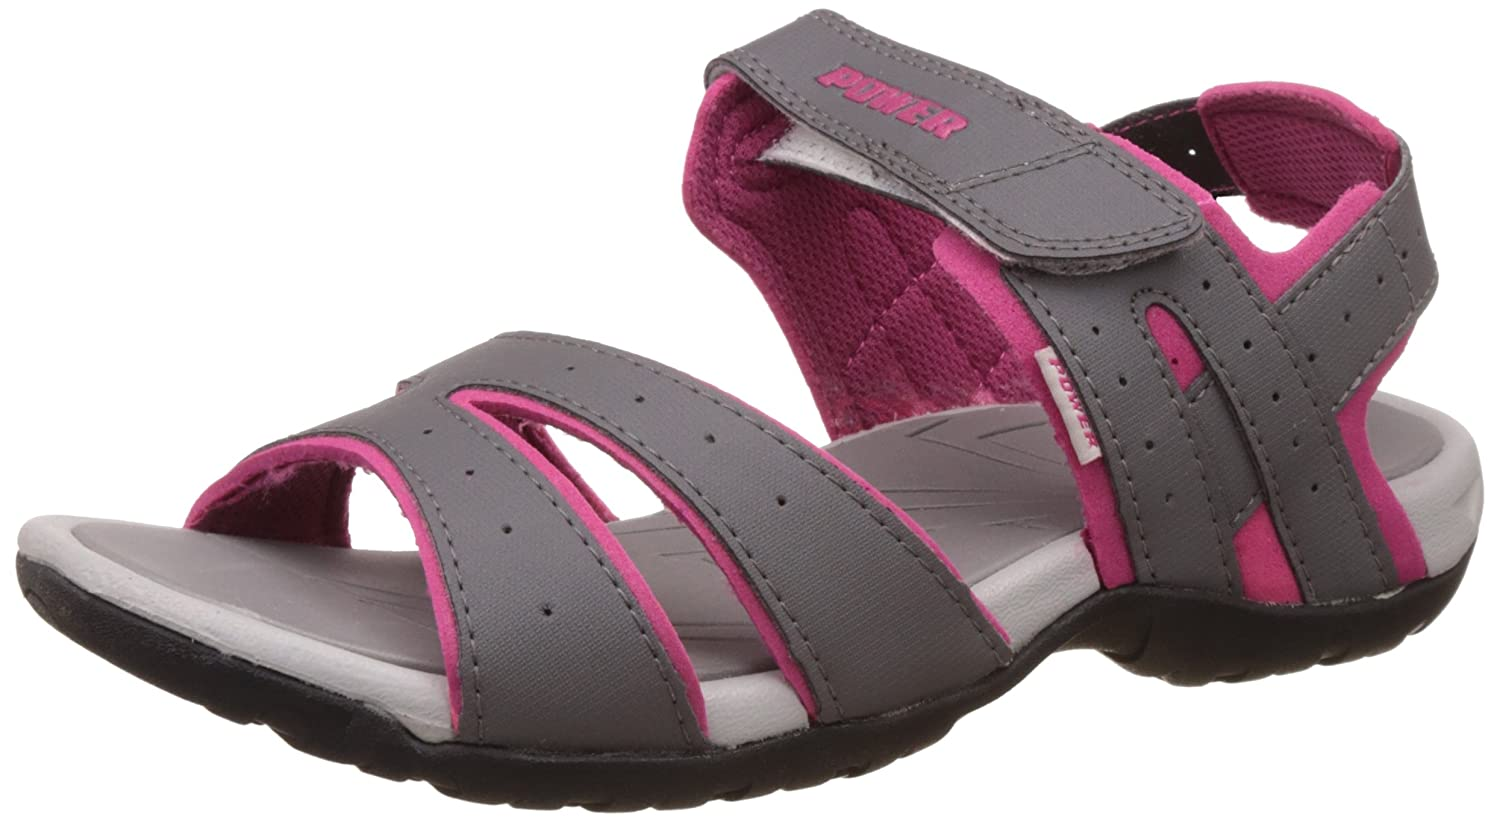 Power Women's Aster Flip-Flops and House Slippers